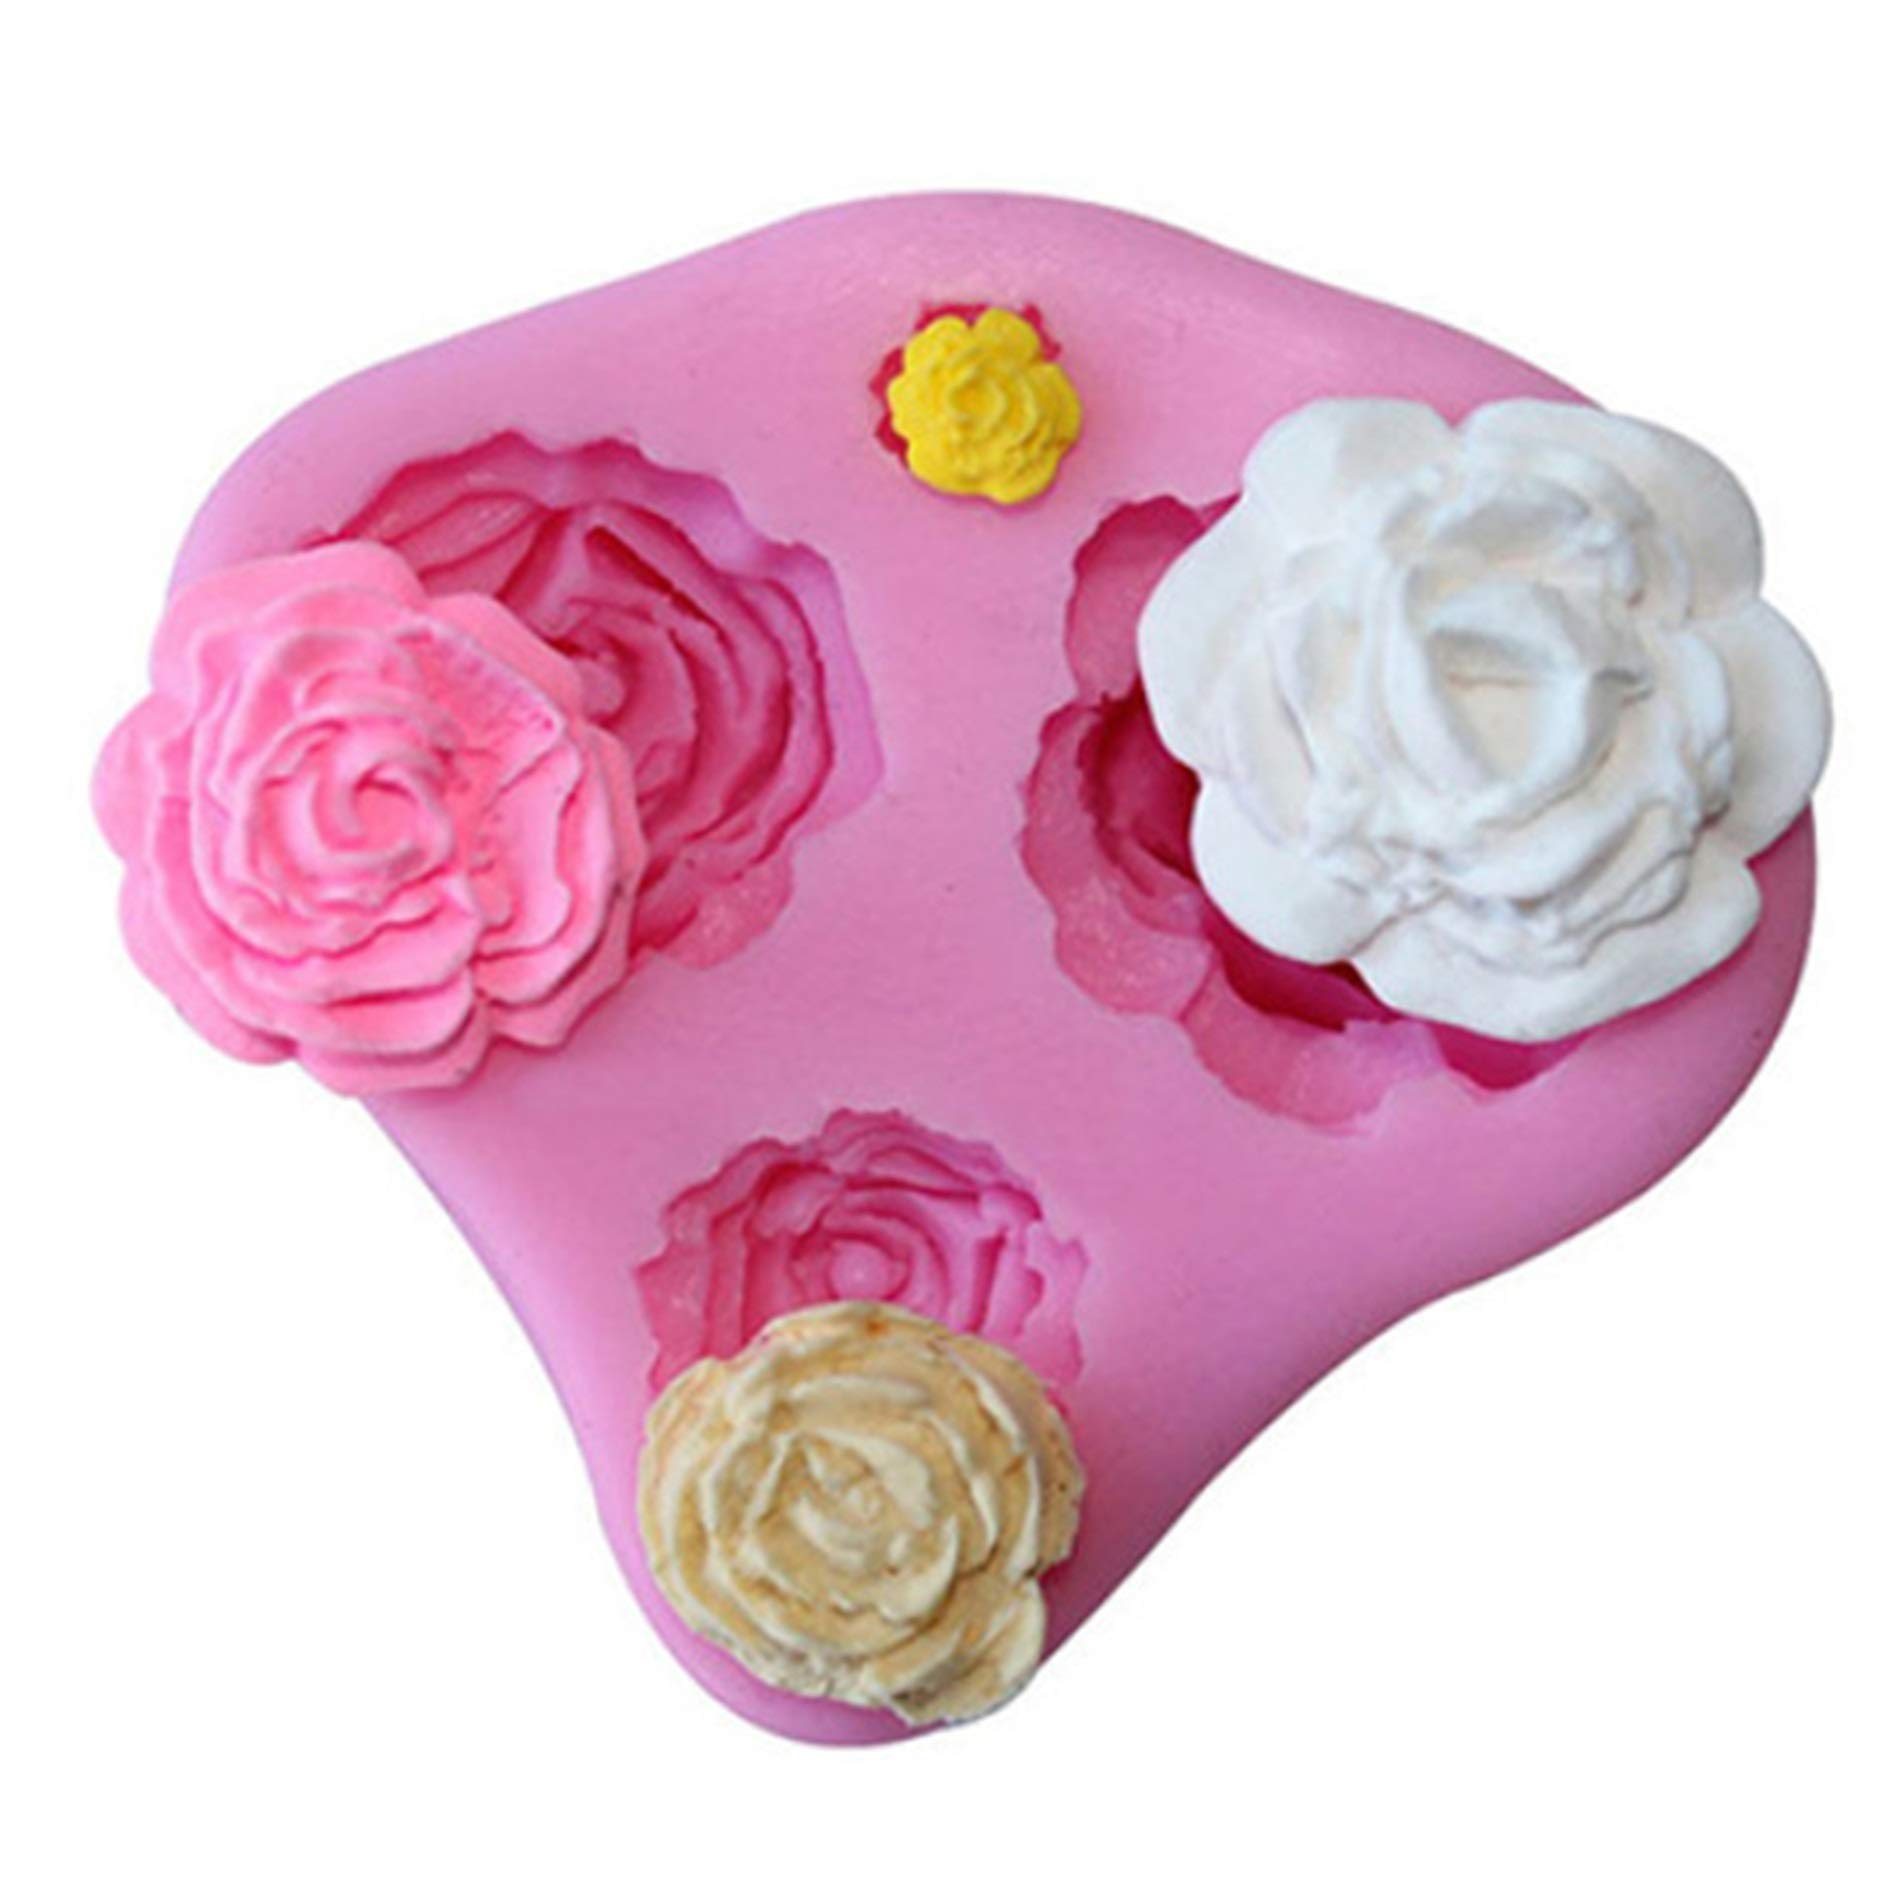 Silicone Cake Mold 3D Rose Baking DIY Tool Sugar Craft Molds for Valentine's Day Wedding Day